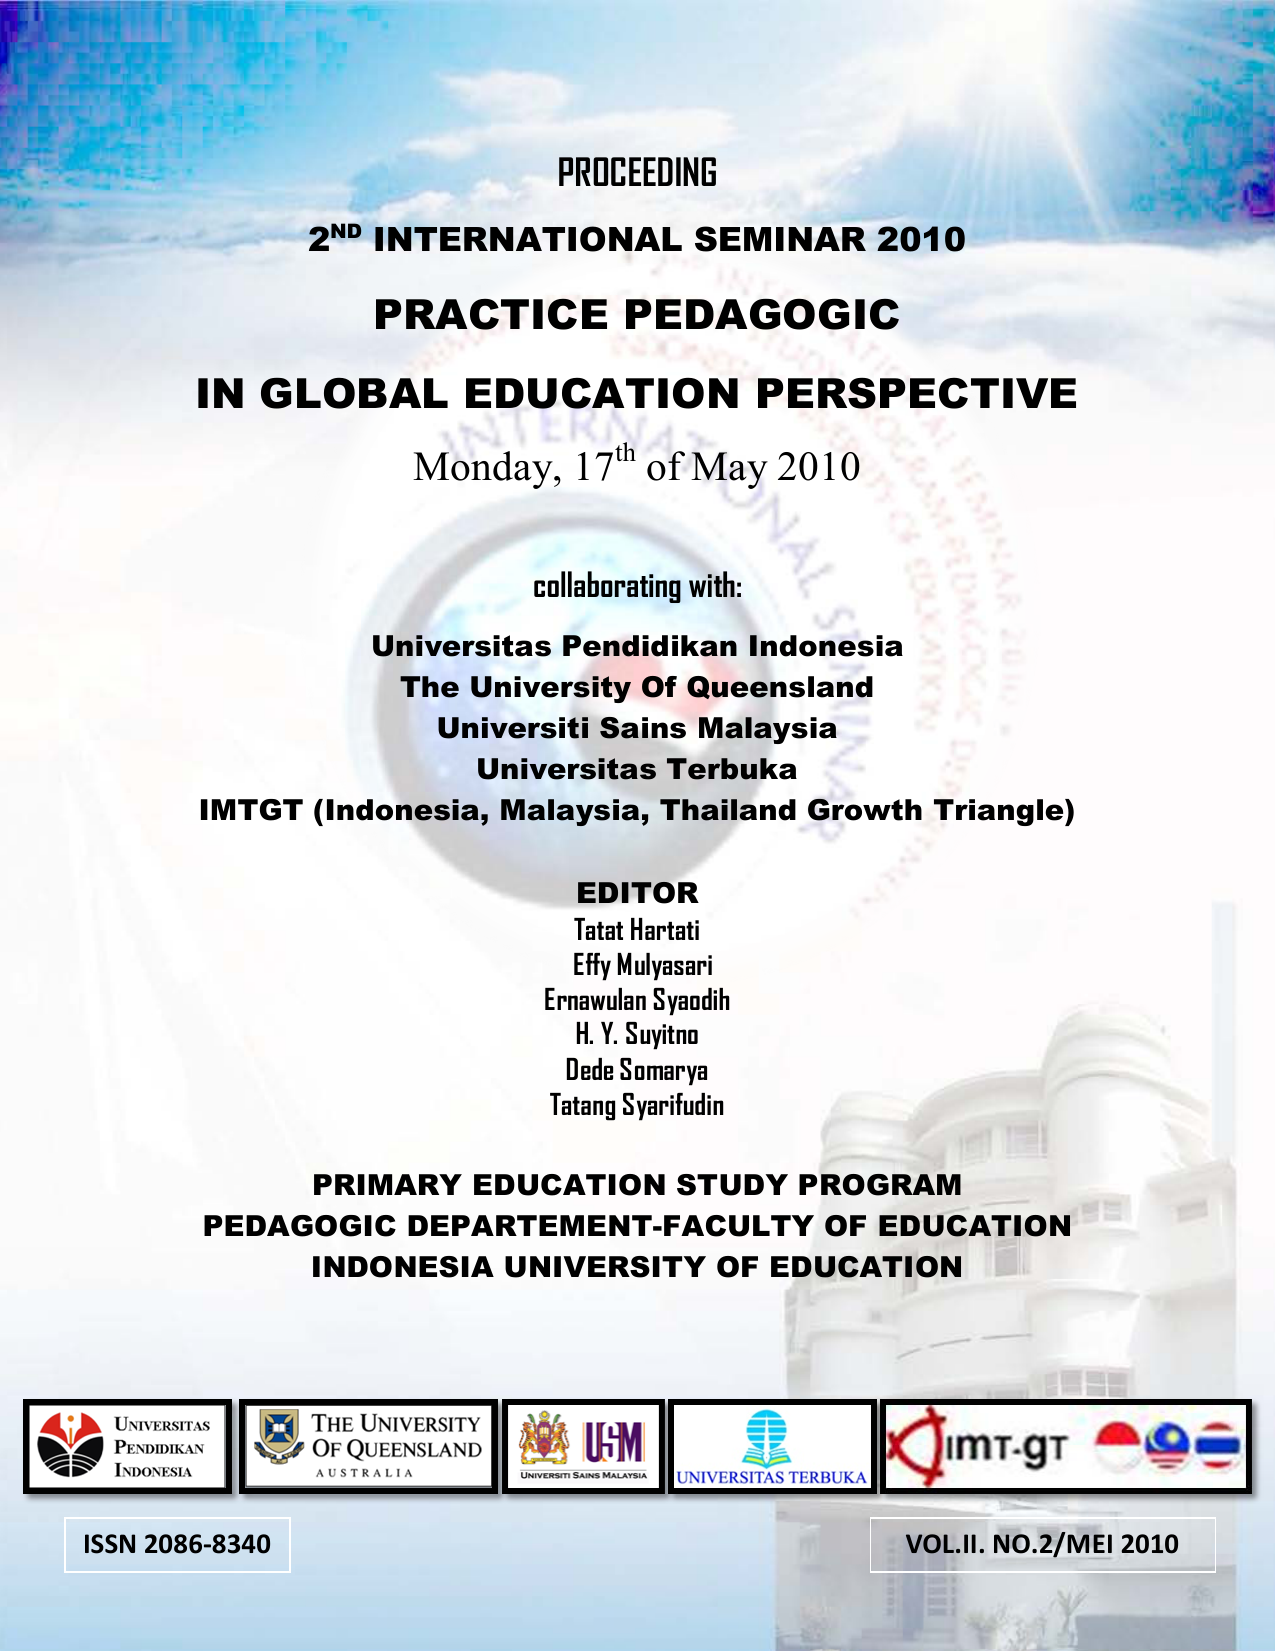 PRACTICE PEDAGOGIC IN GLOBAL EDUCATION PERSPECTIVE